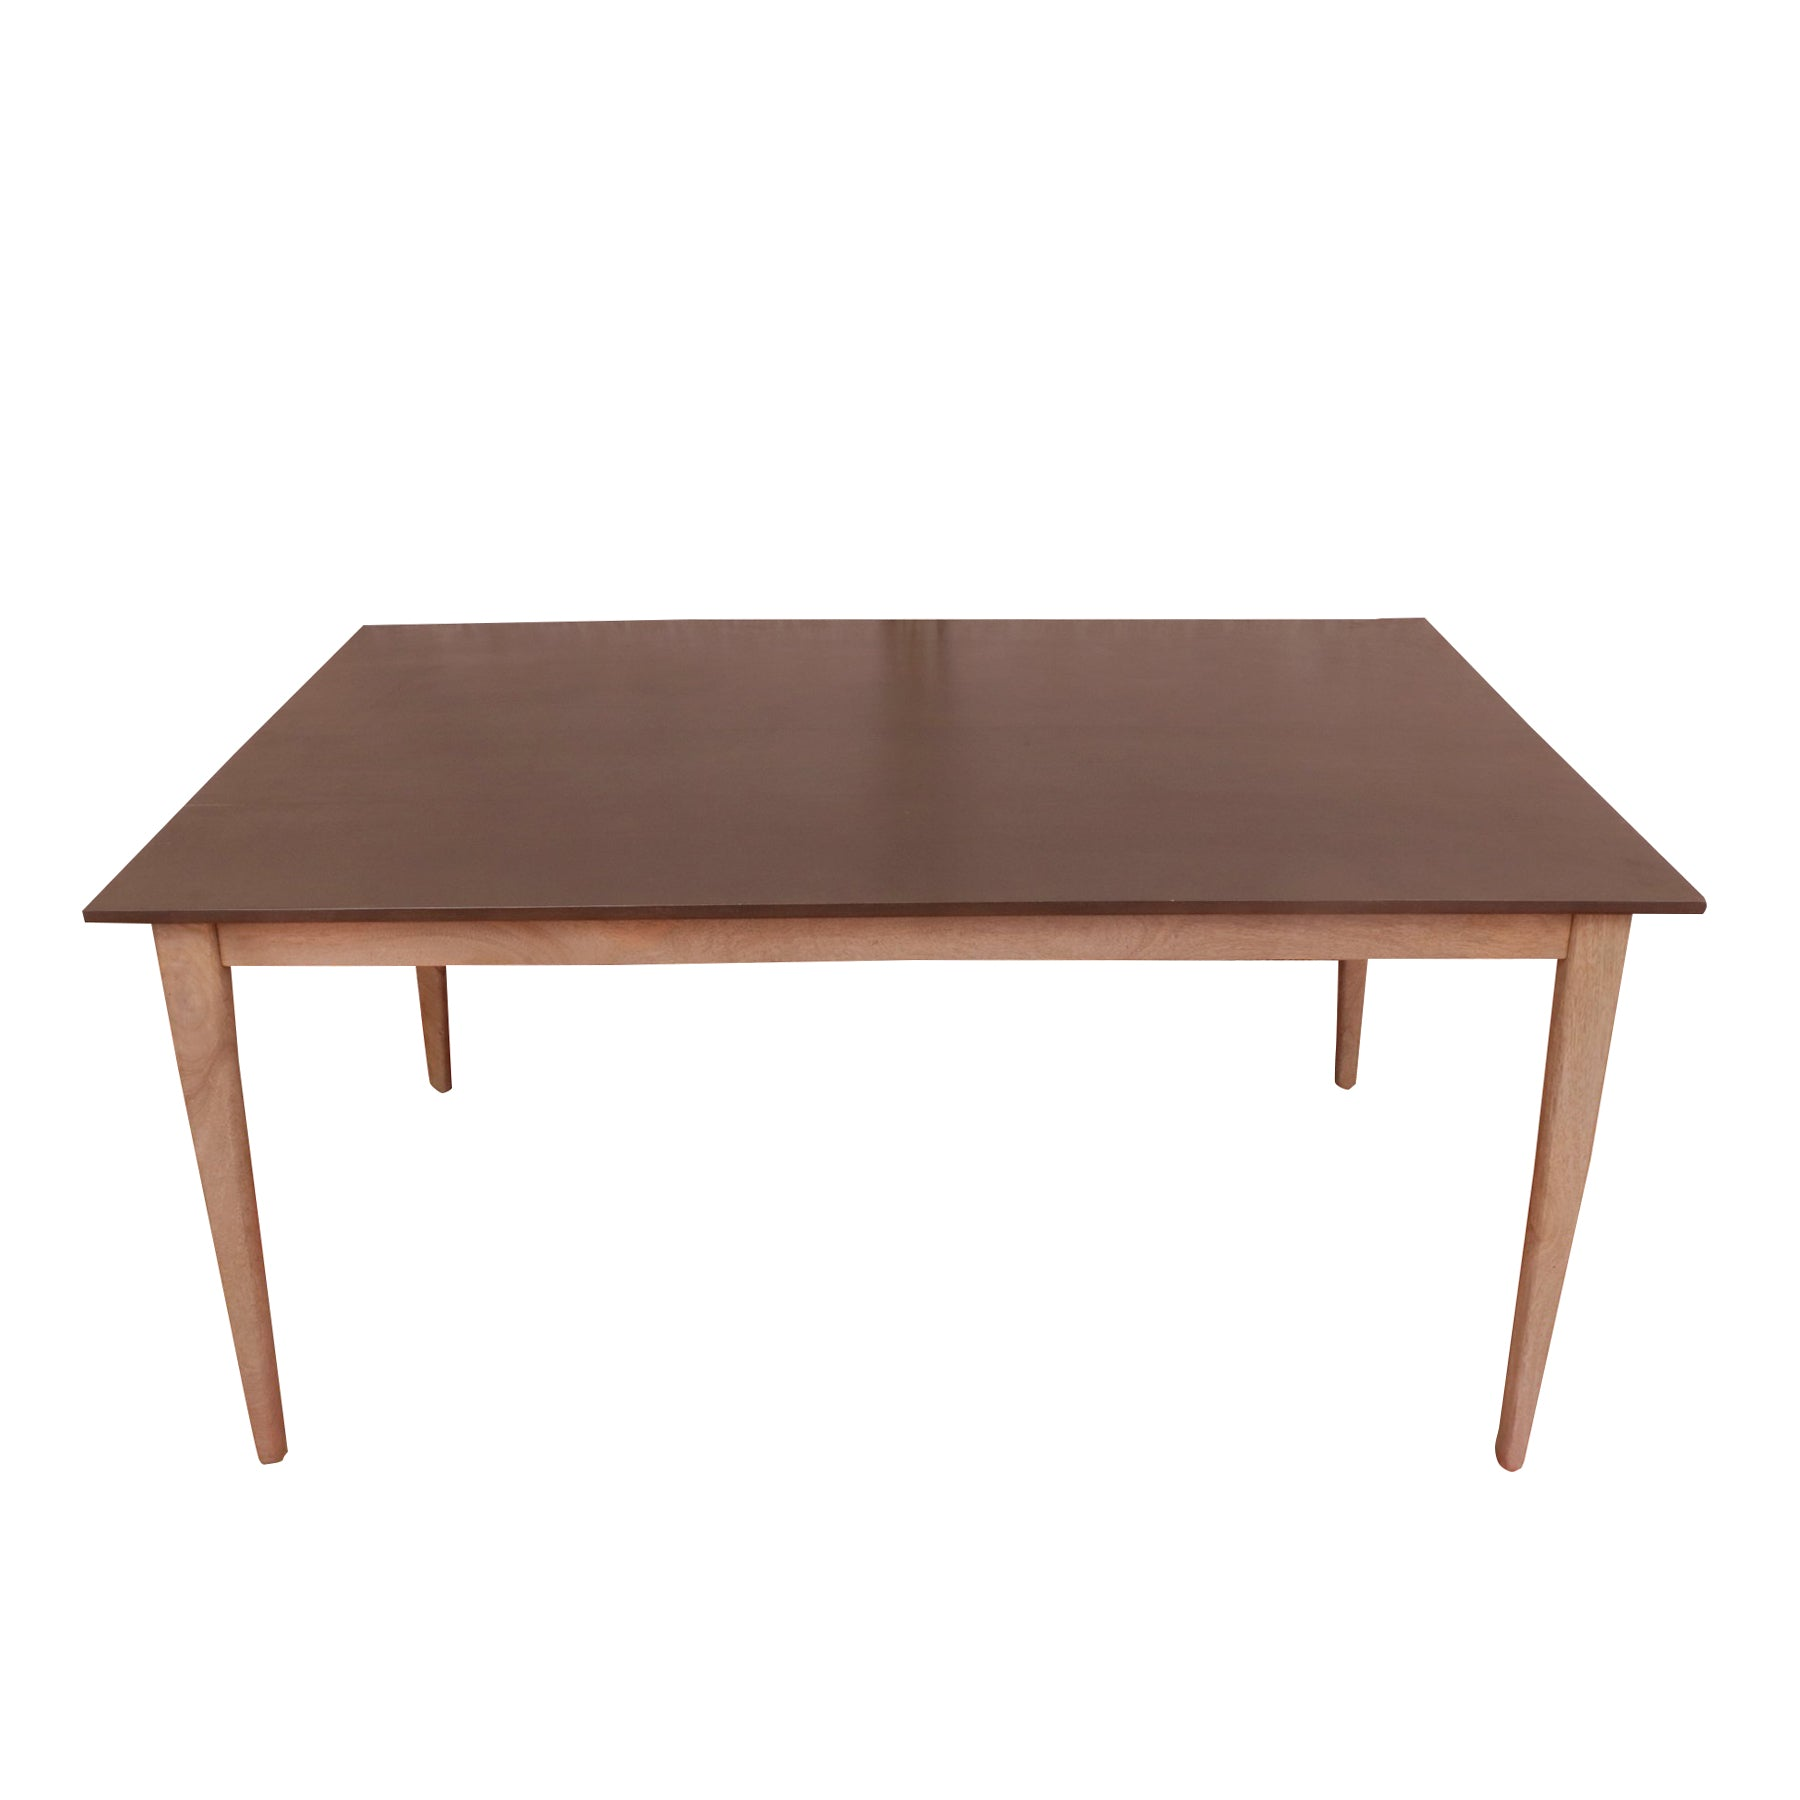 Simple Rectangle Table